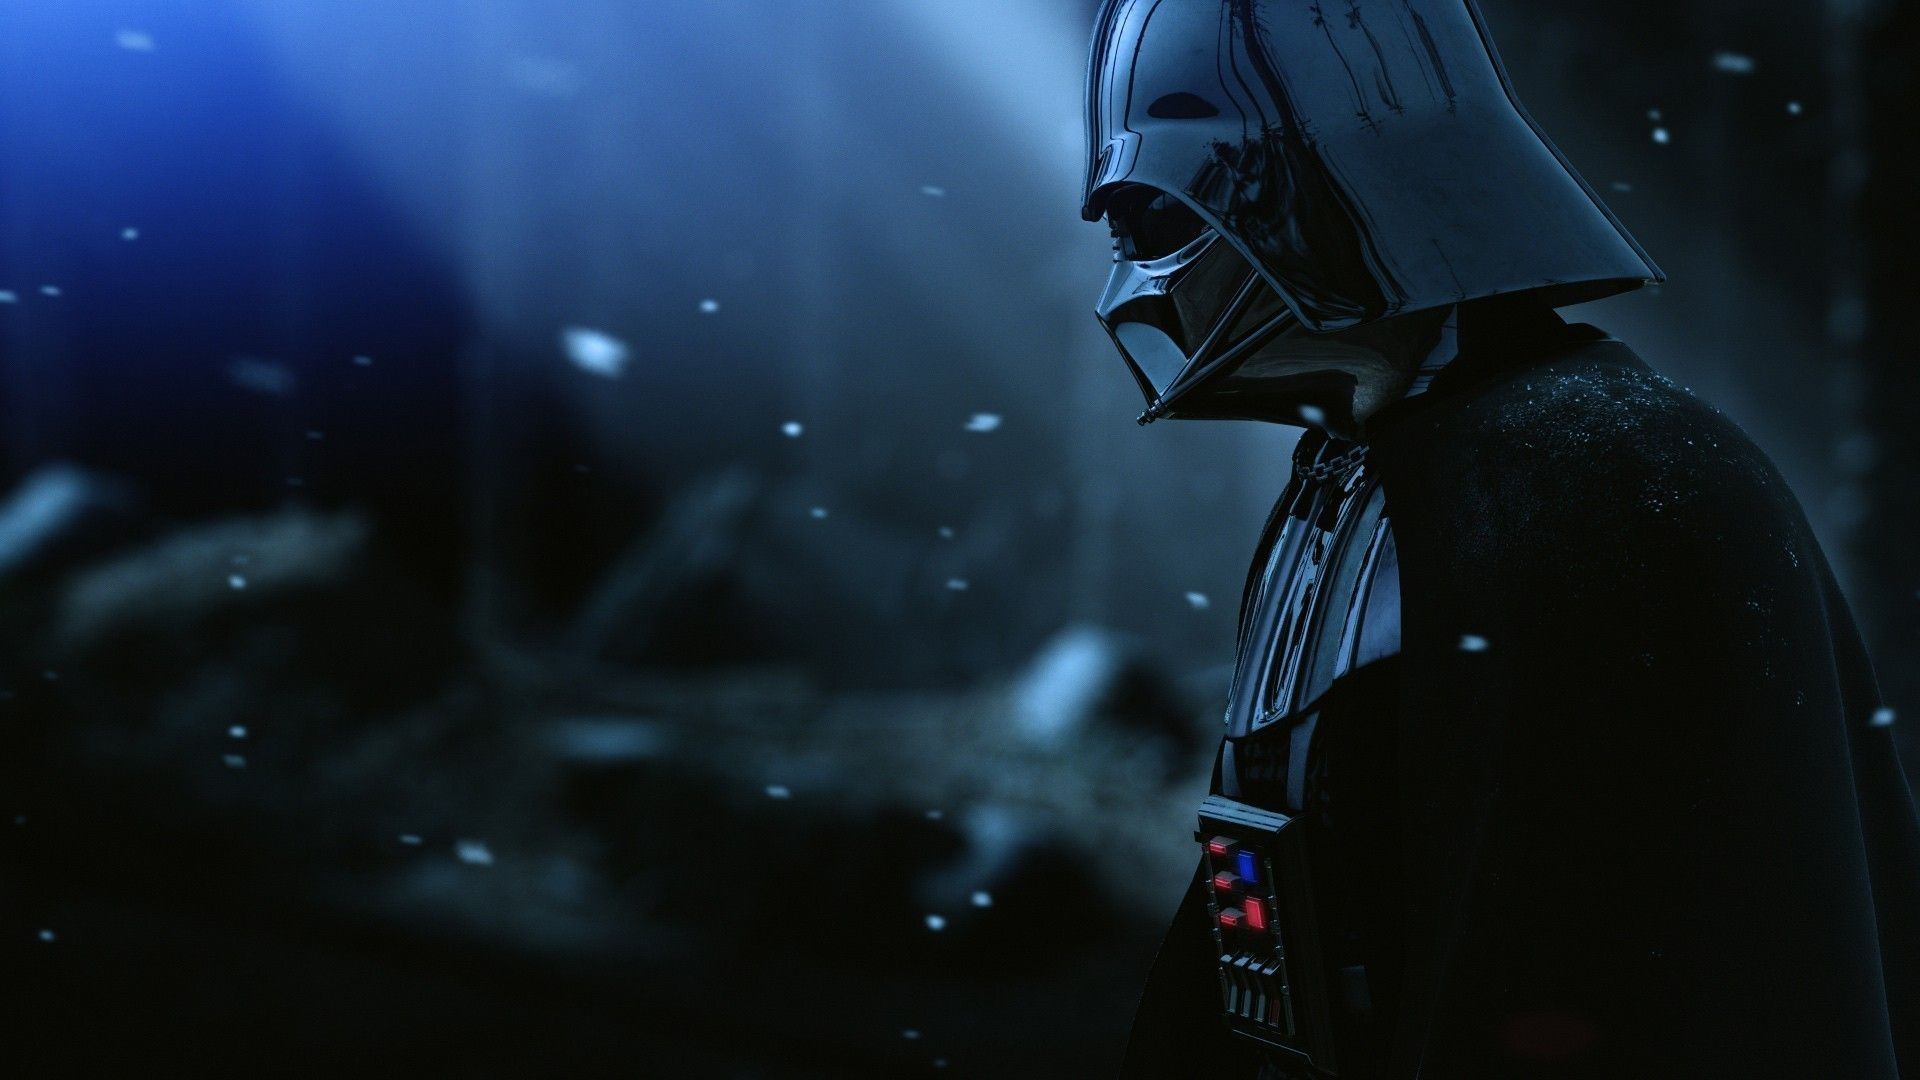 10 Most Popular 1920x1080 Wallpaper Star Wars Full Hd 1080p For Pc Background 2019 Free Download In 2020 Darth Vader Wallpaper Star Wars Wallpaper Star Wars Background